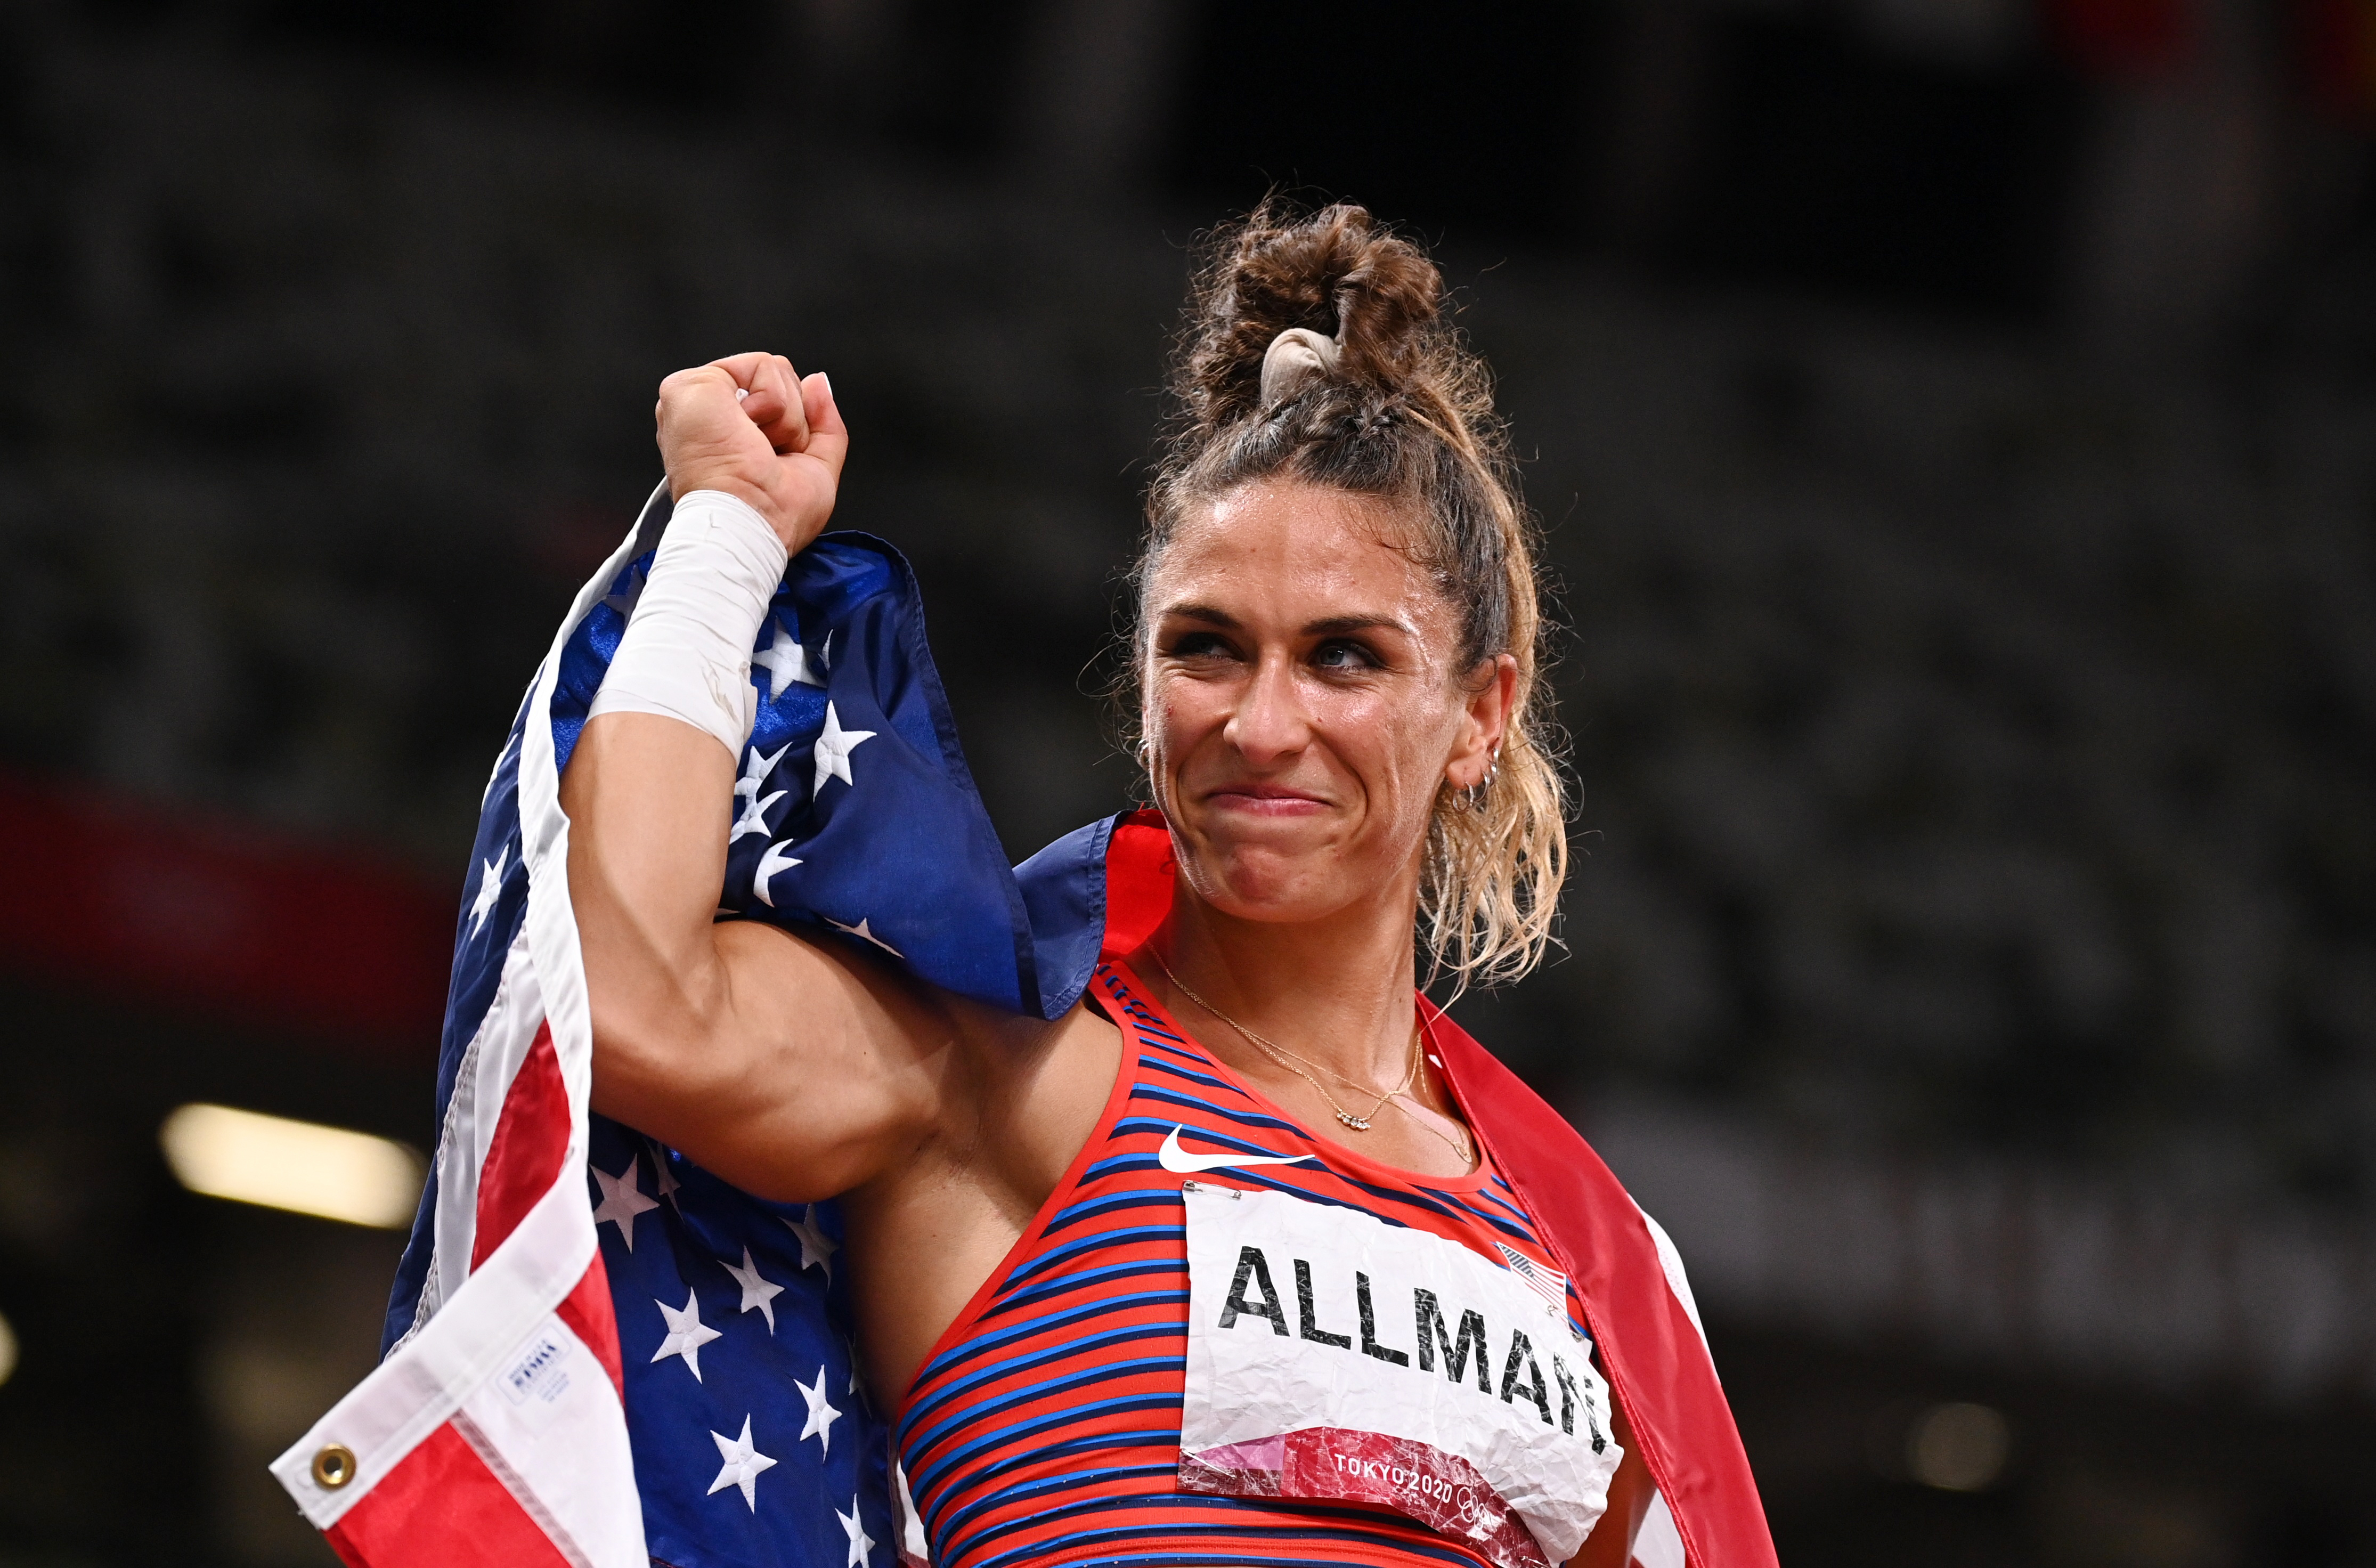 Tokyo 2020 Olympics - Athletics - Women's Discus Throw - Final - Olympic Stadium, Tokyo, Japan - August 2, 2021. Valarie Allman of the United States celebrates with her national flag after winning gold REUTERS/Dylan Martinez